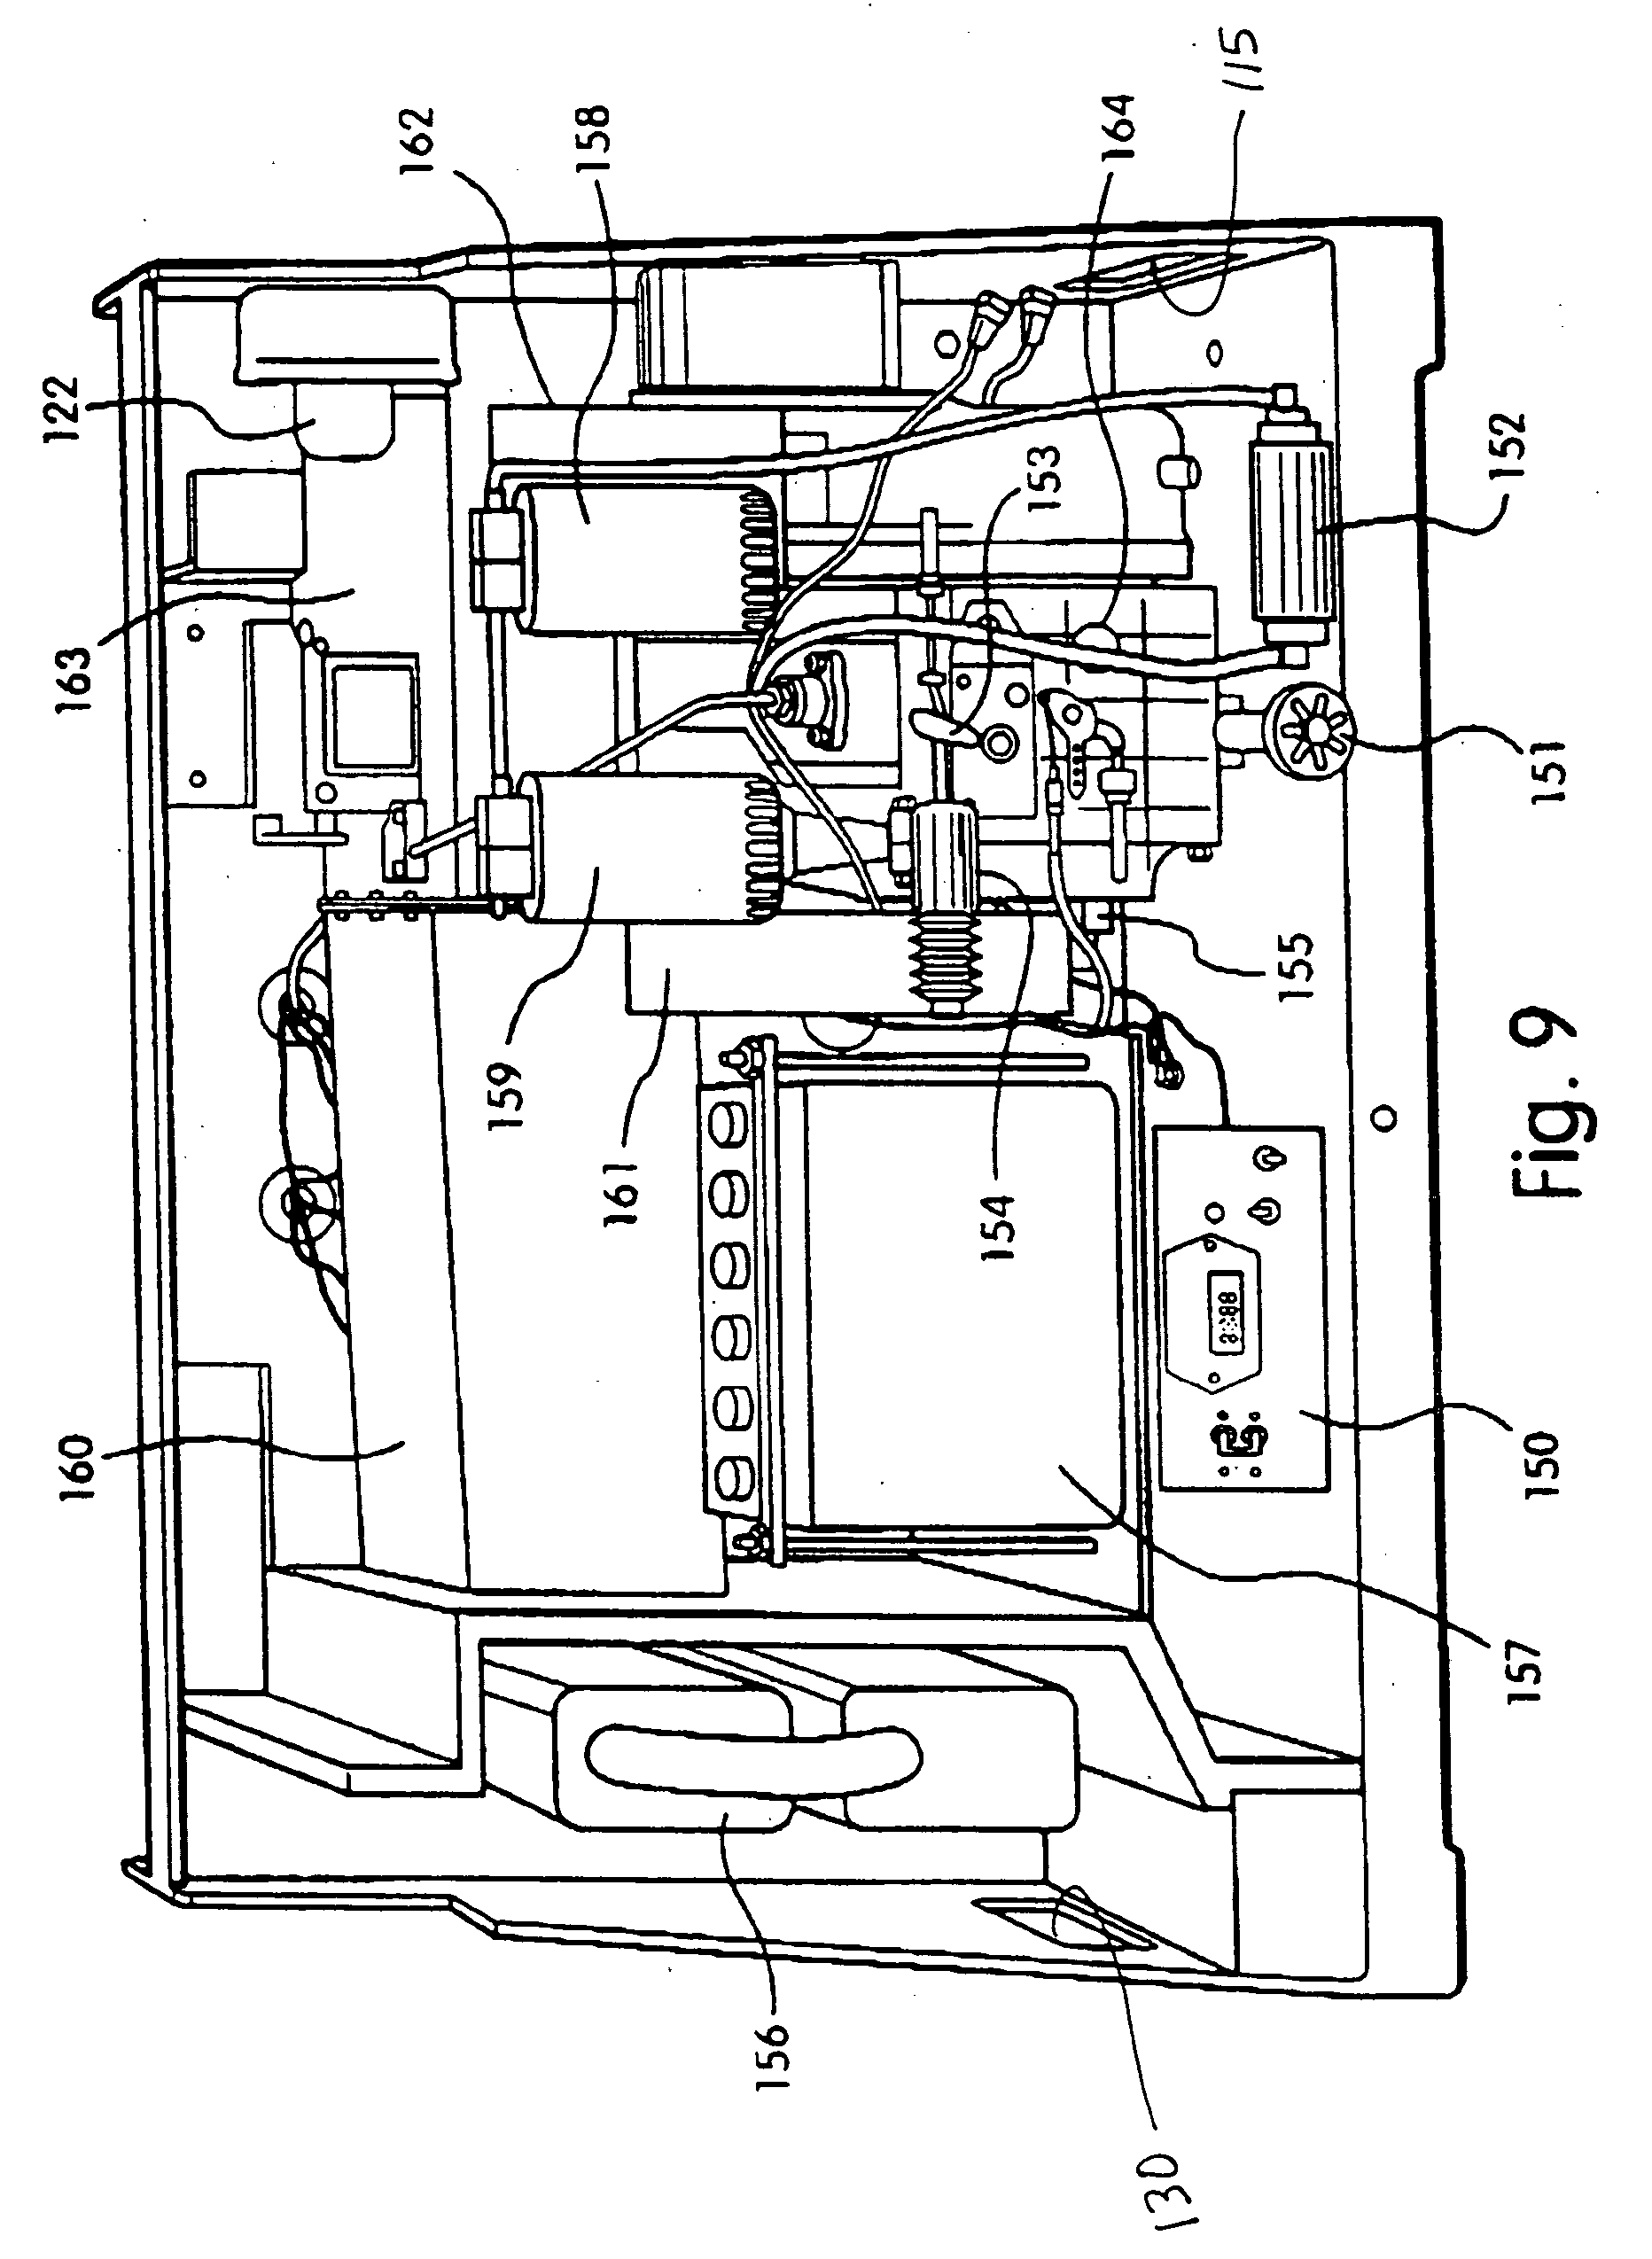 thermo king v520 wiring diagram for a craftsman riding mower patent us20040231831 apparatus which eliminates the need